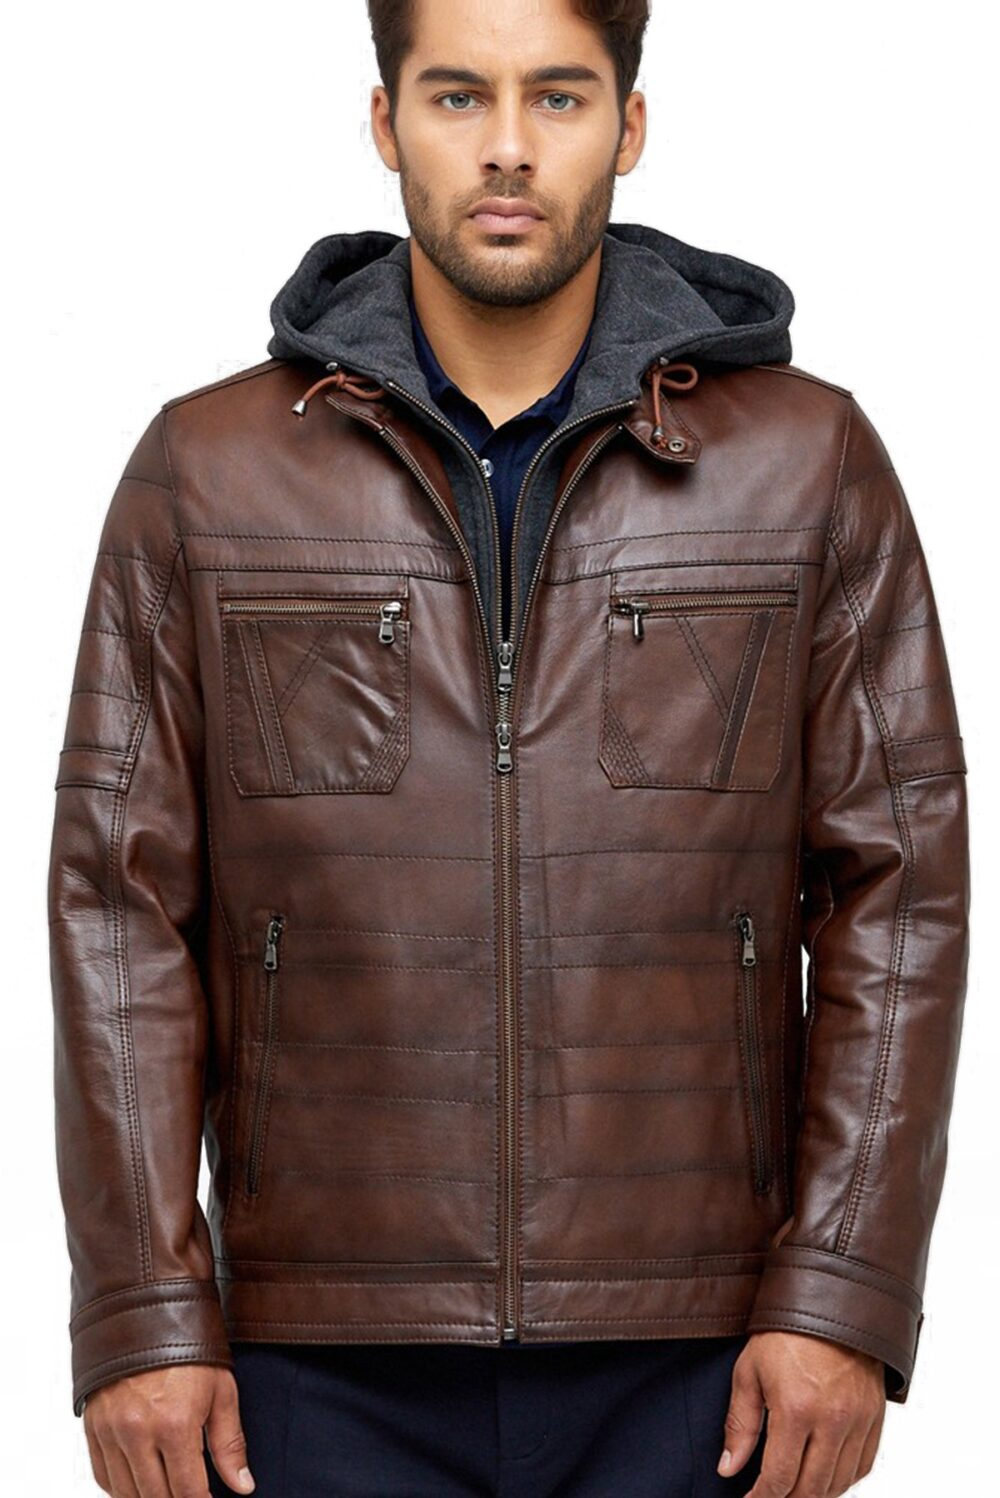 Ronny Vintage Brown Men's Hooded Leather Jacket